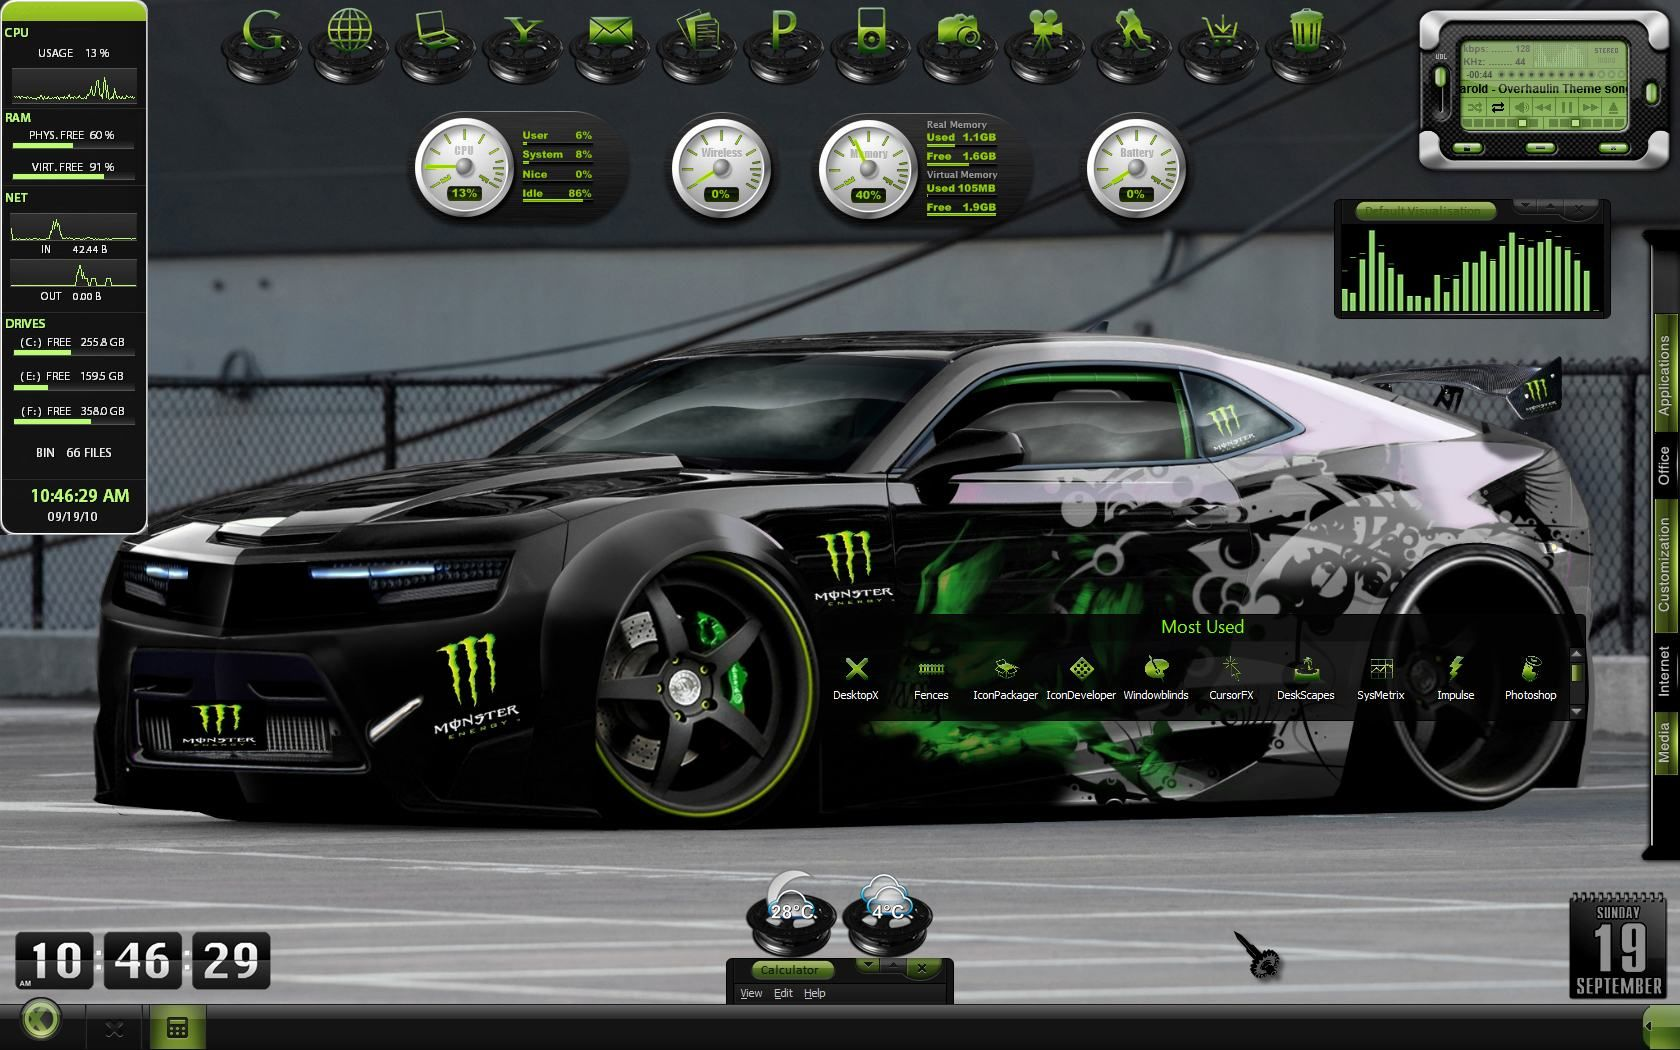 Free Adorable Monster Energy Images On Your Computer